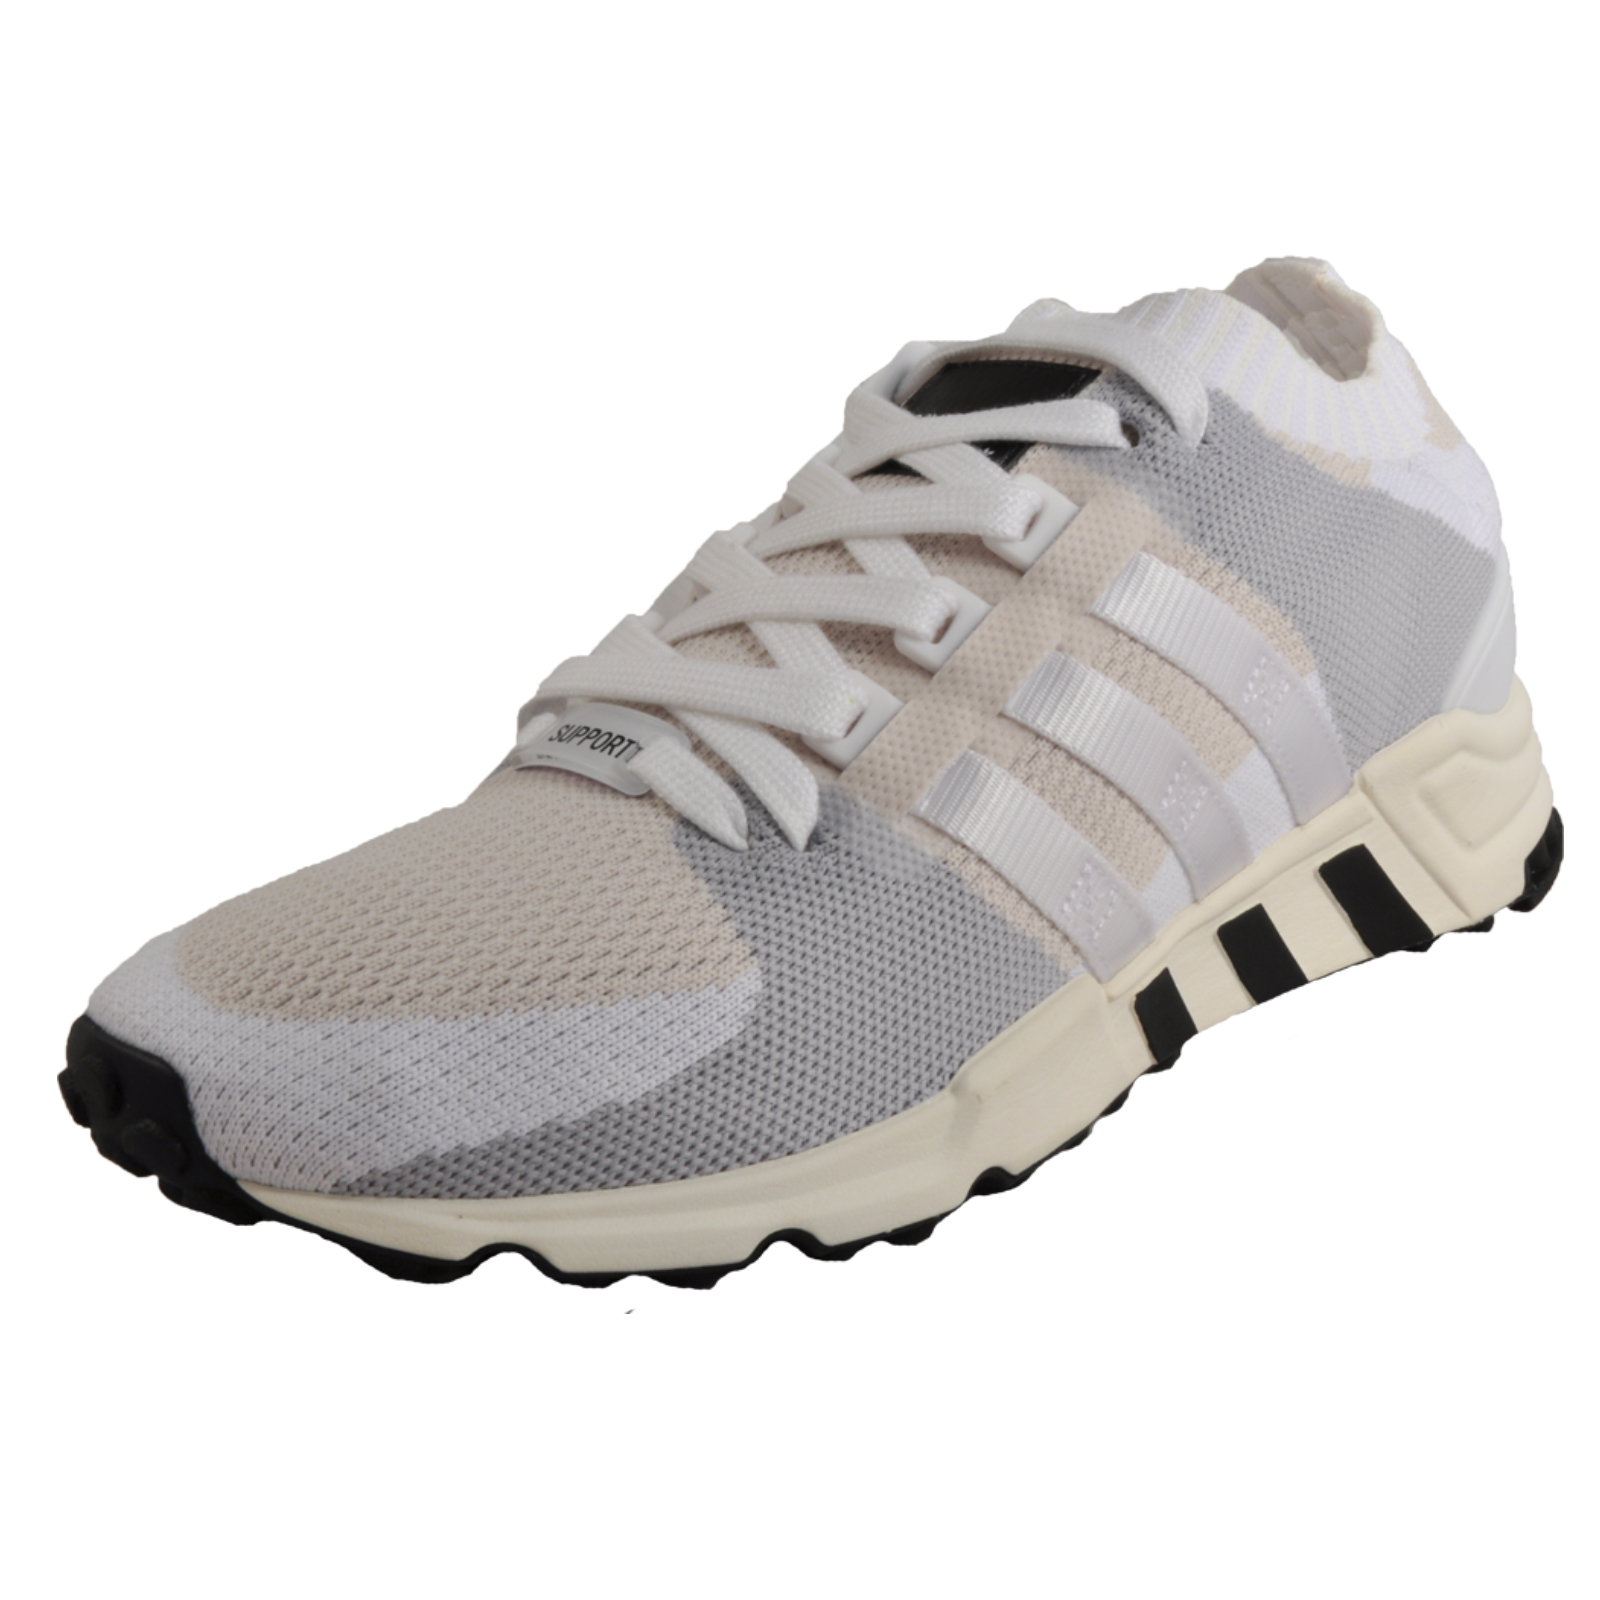 fef42df30e35 Details about Adidas EQT Support Ultra PK Men s Retro Running Fitness Gym  Trainers White